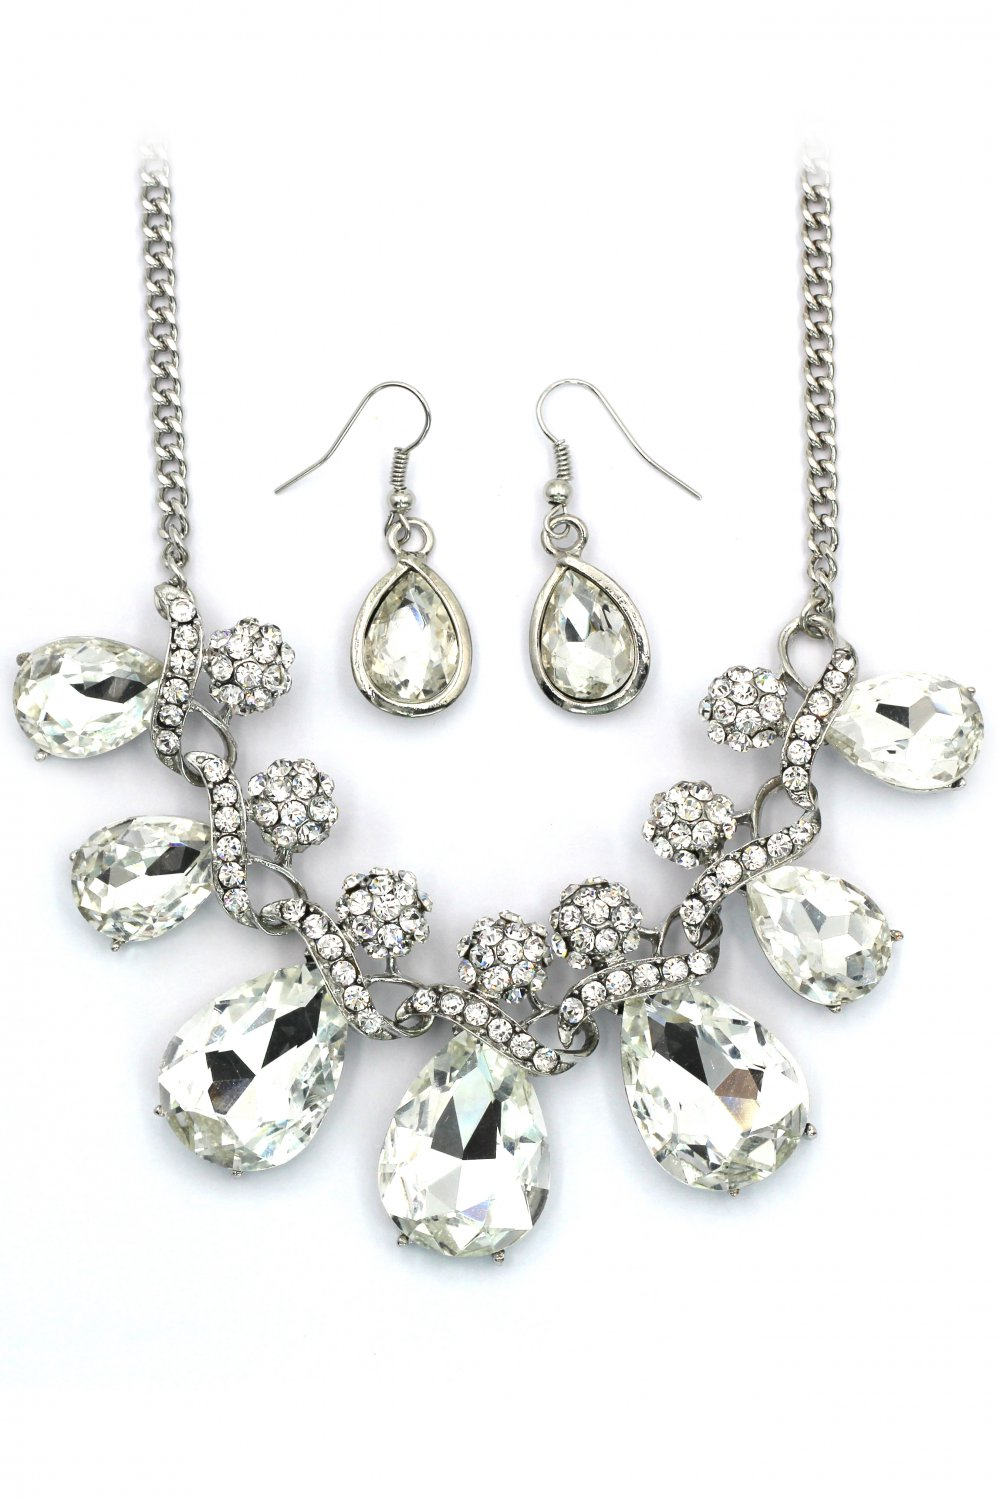 Noble cobblestone crystal necklace earrings silver sets